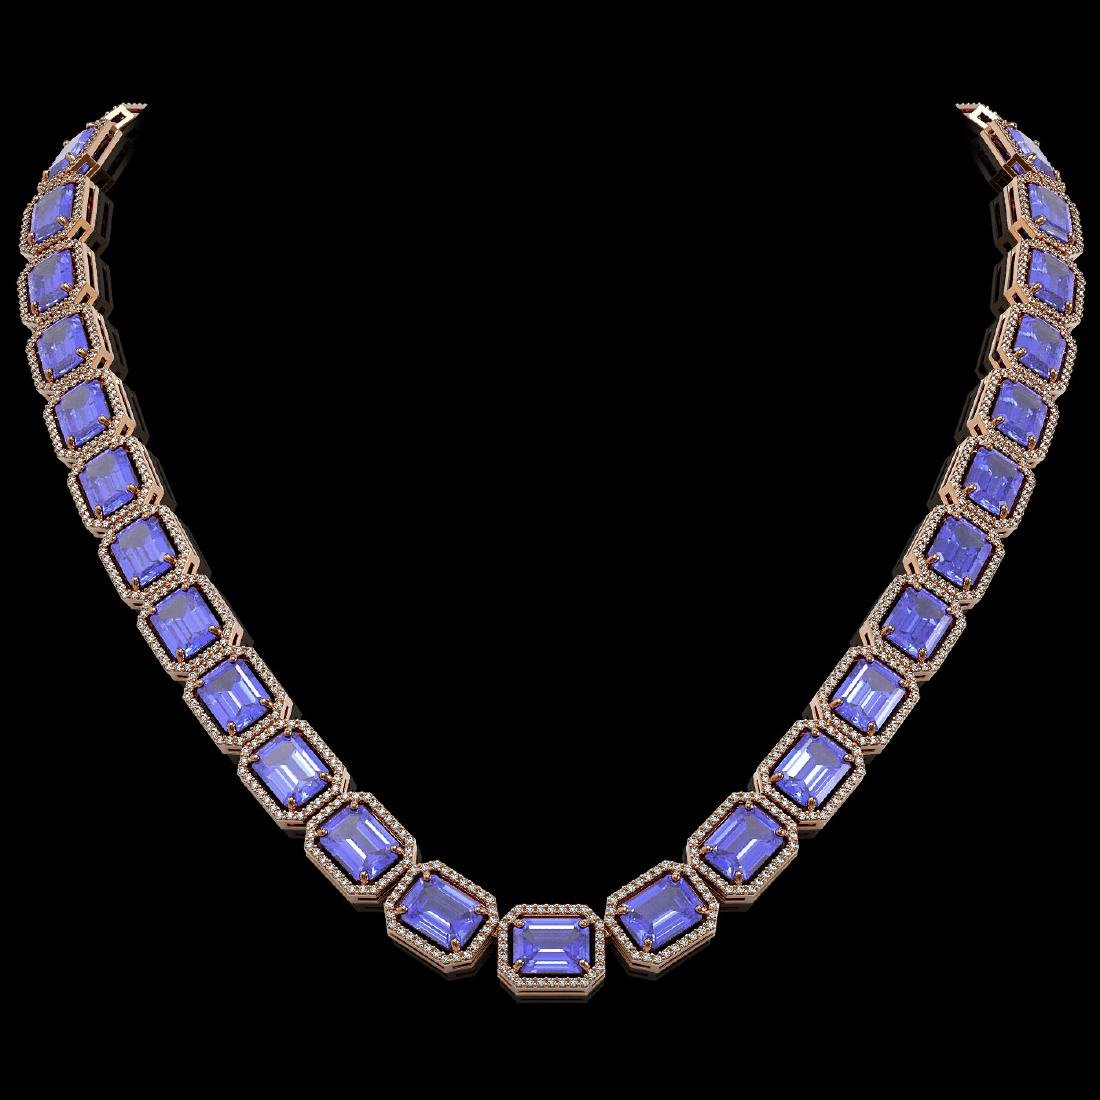 79.99 CTW Tanzanite & Diamond Halo Necklace 10K Rose